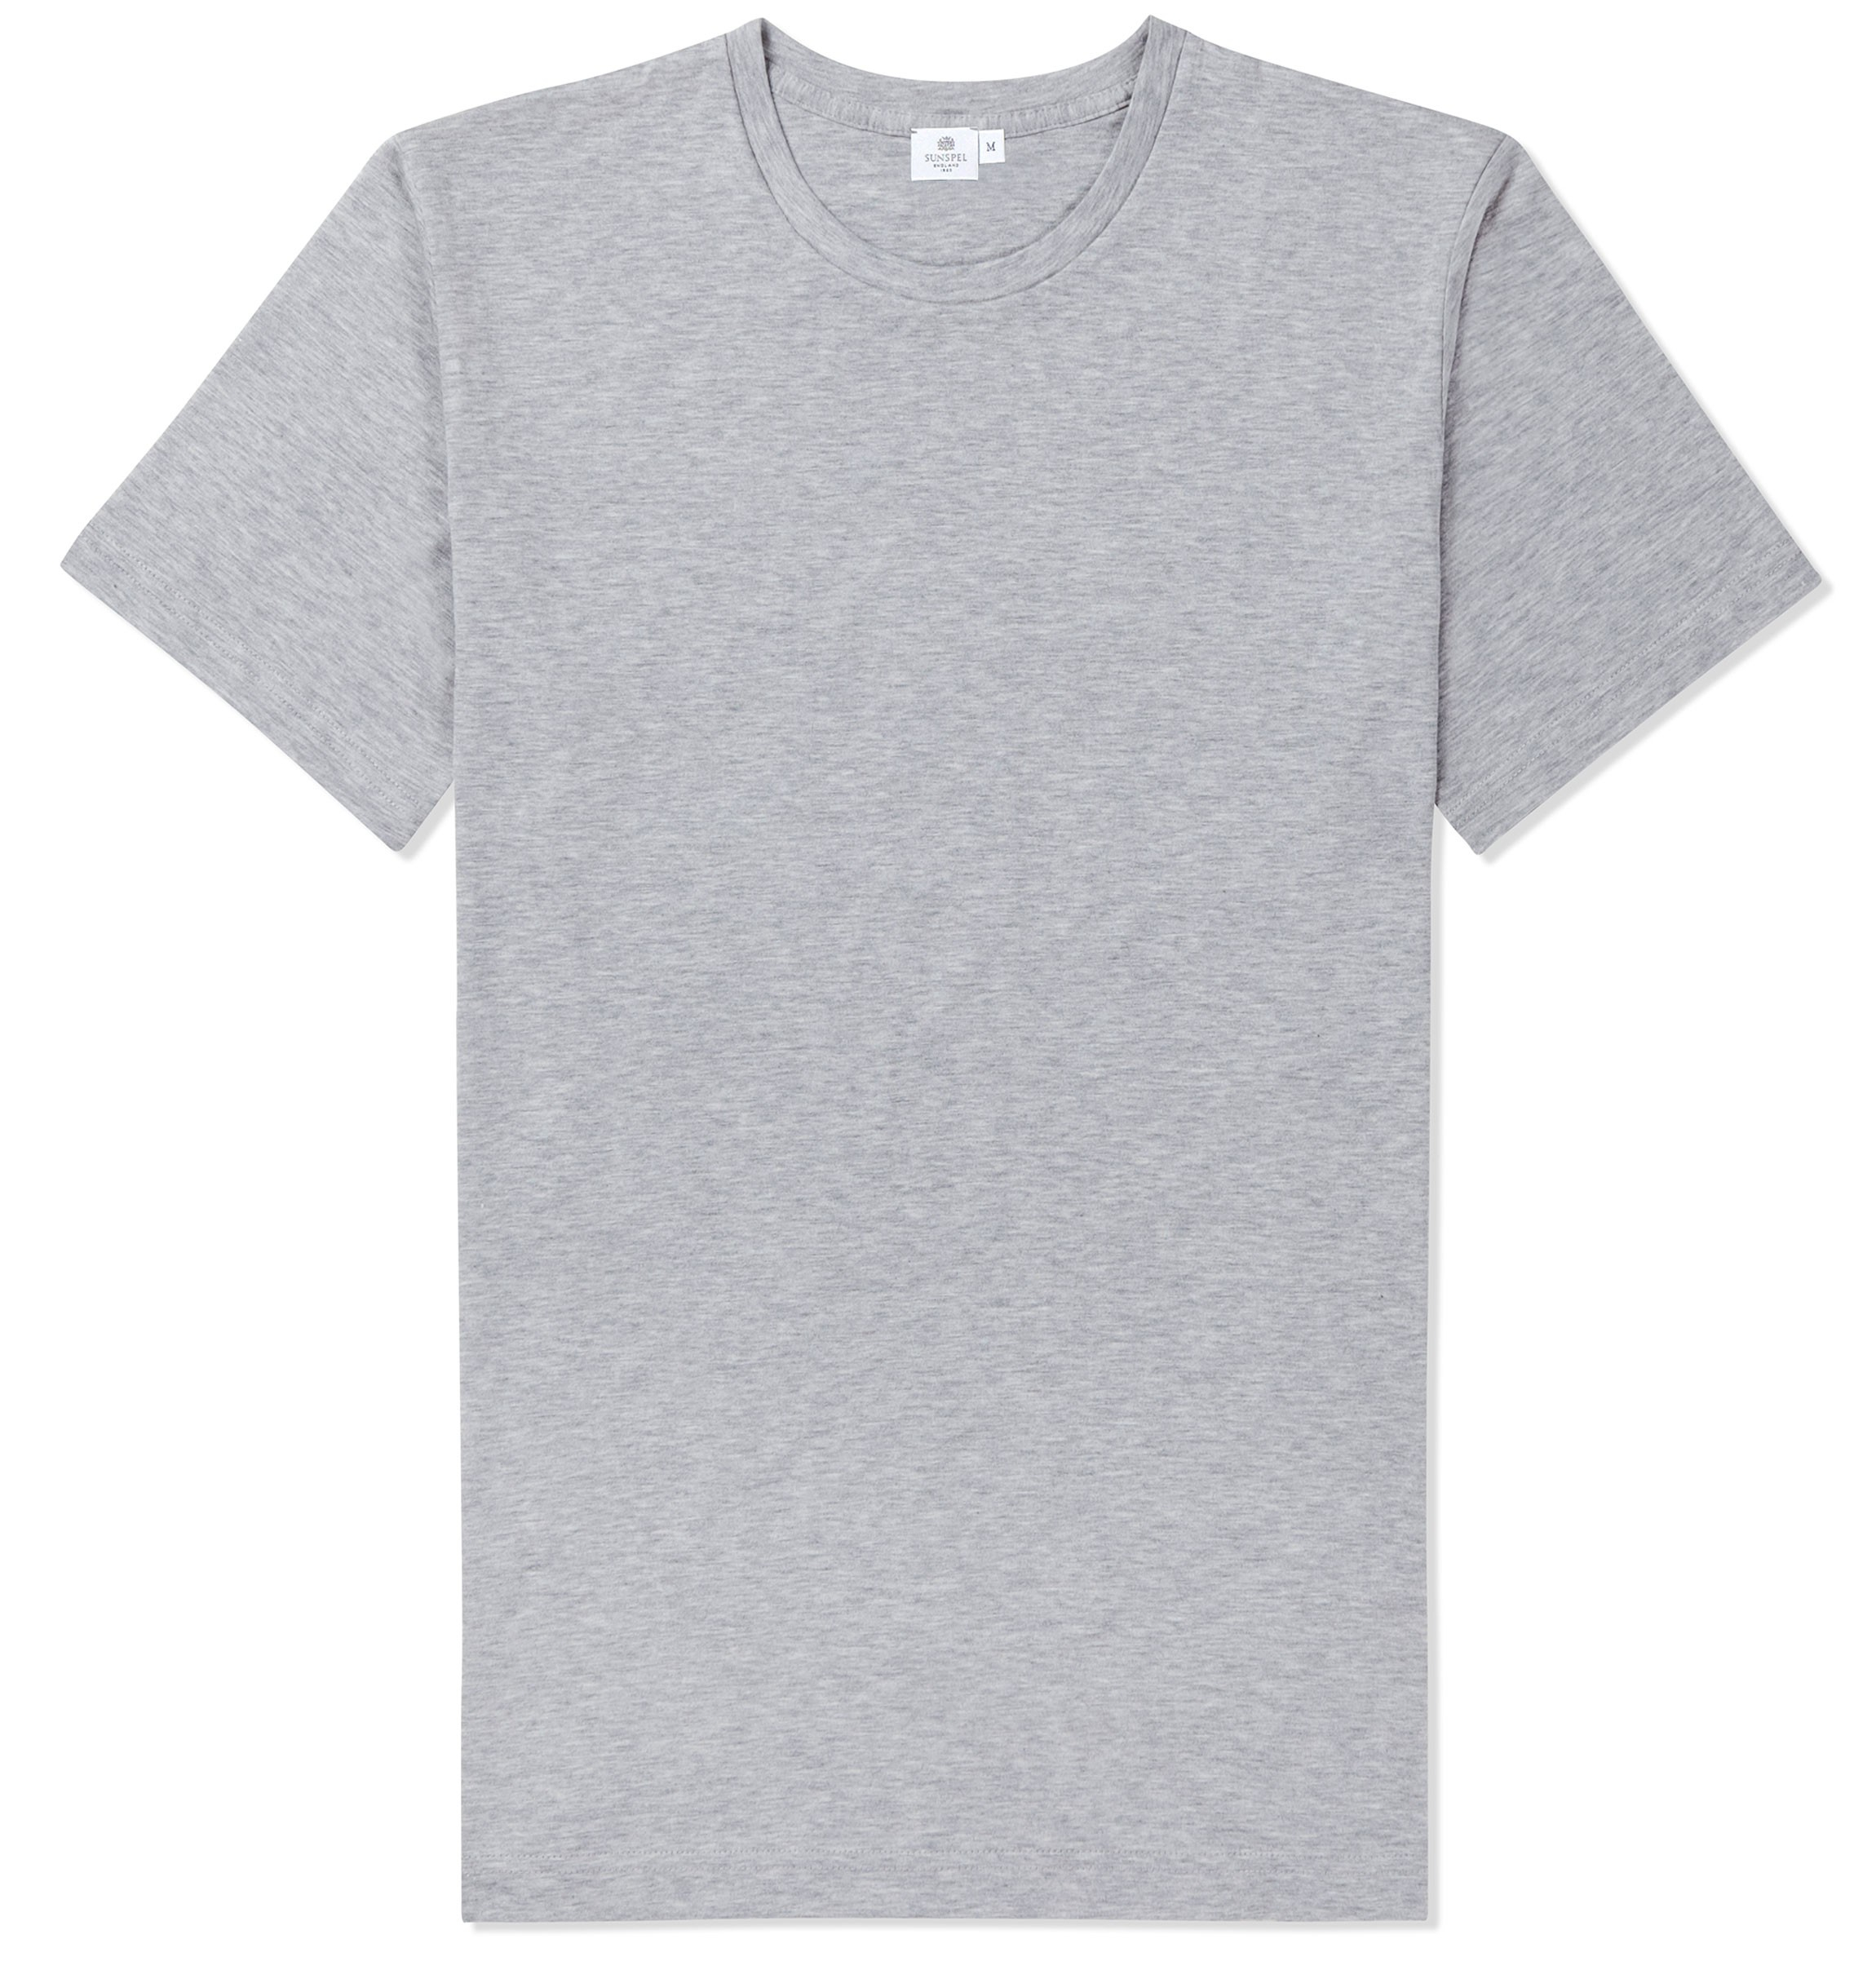 5ffa39744f Sunspel Riviera Crew Neck T-Shirt in Gray for Men - Lyst